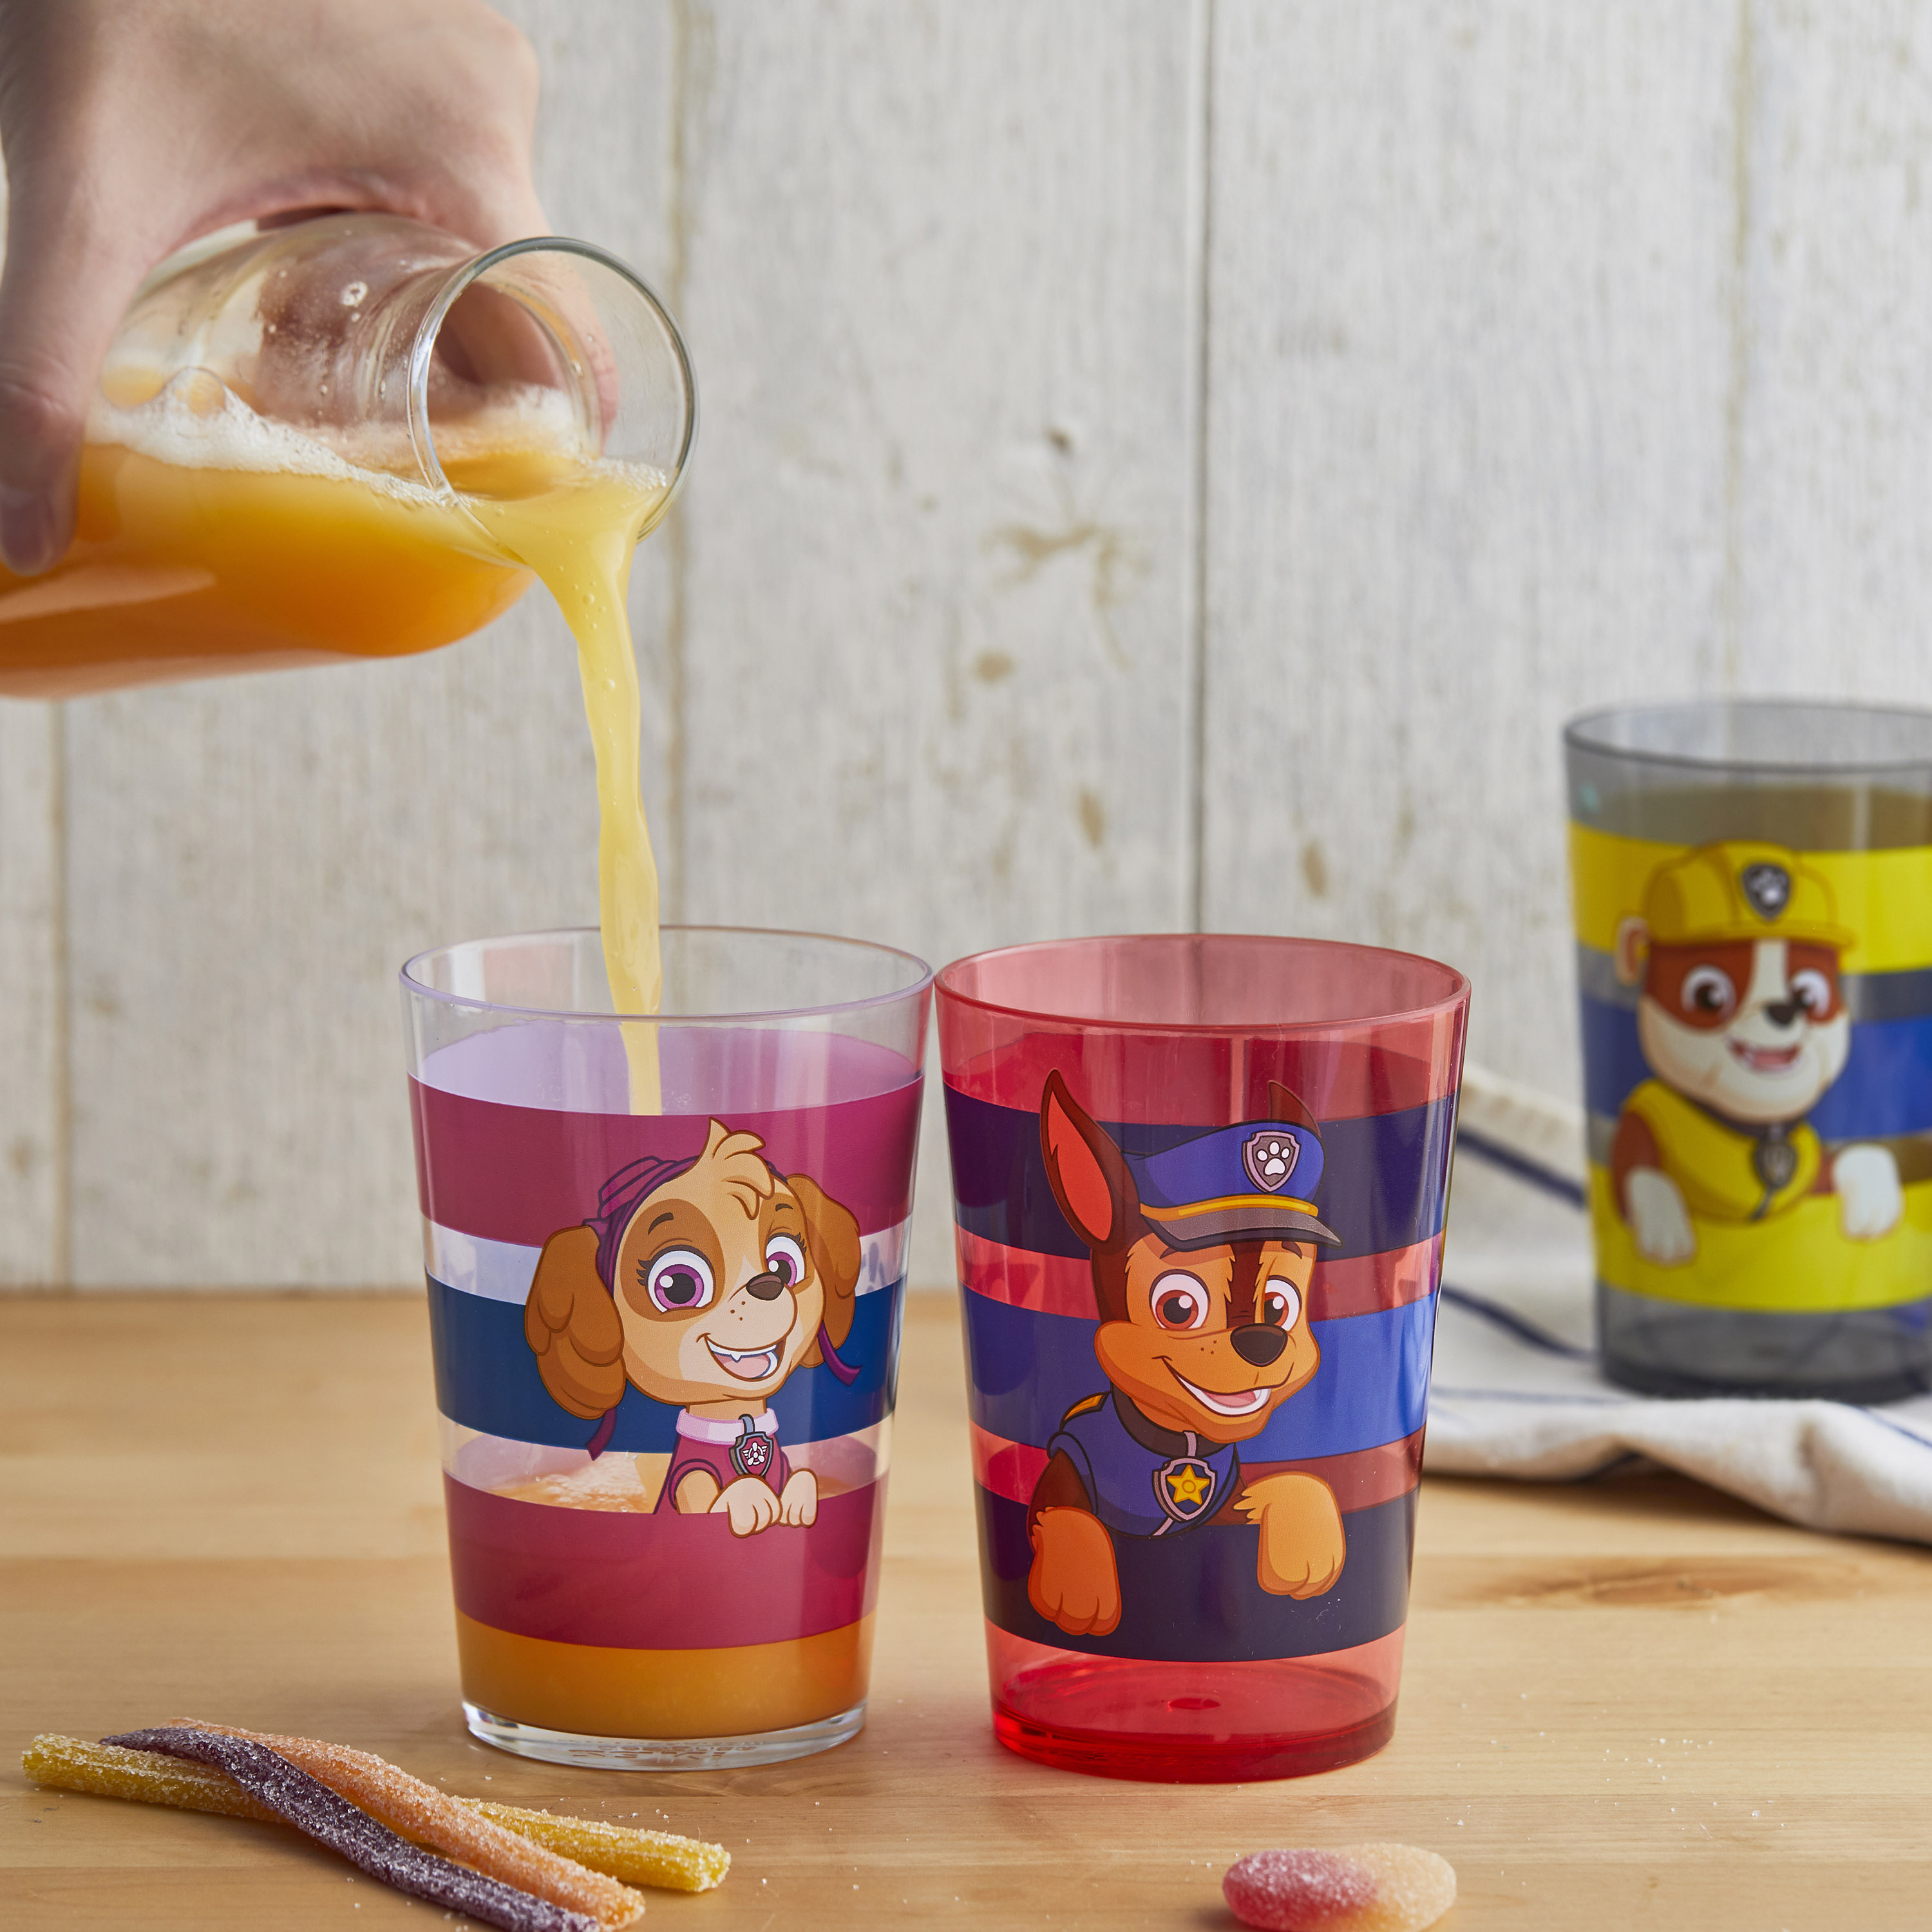 Paw Patrol 14.5 ounce Tumbler, Chase, Skye and Friends, 4-piece set slideshow image 3